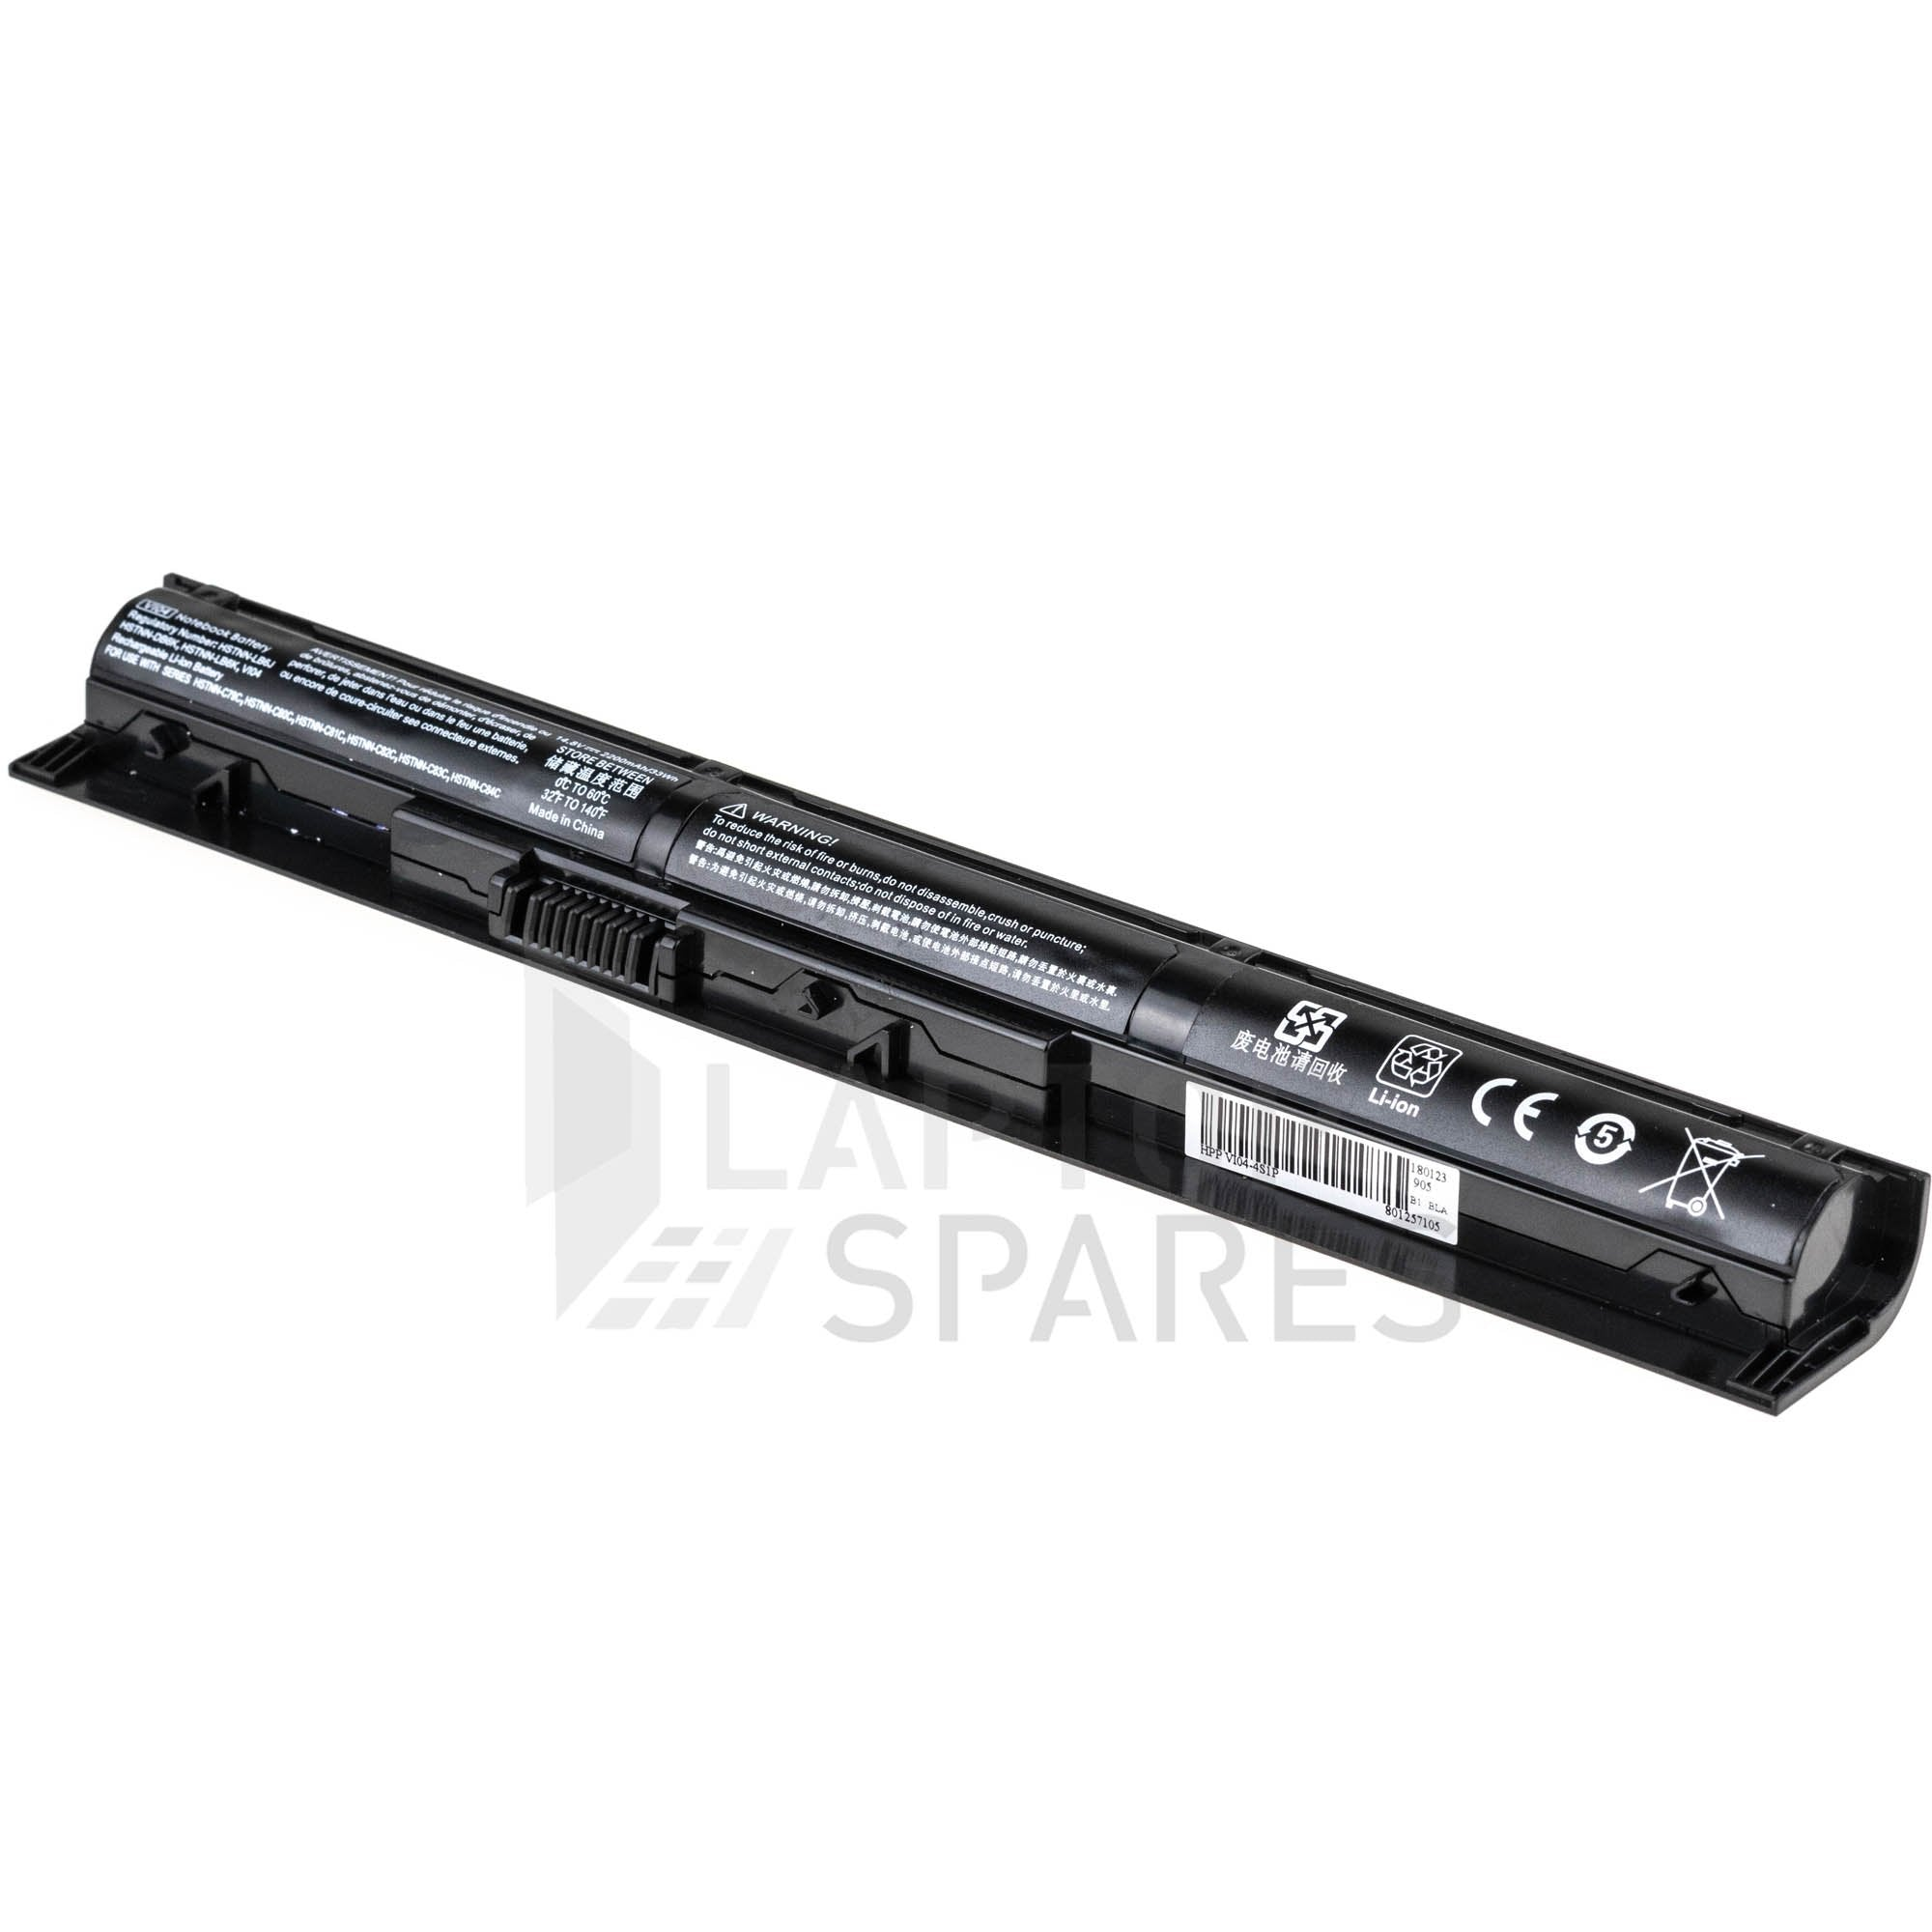 HP J6U78AA 2200mAh 4 Cell Battery